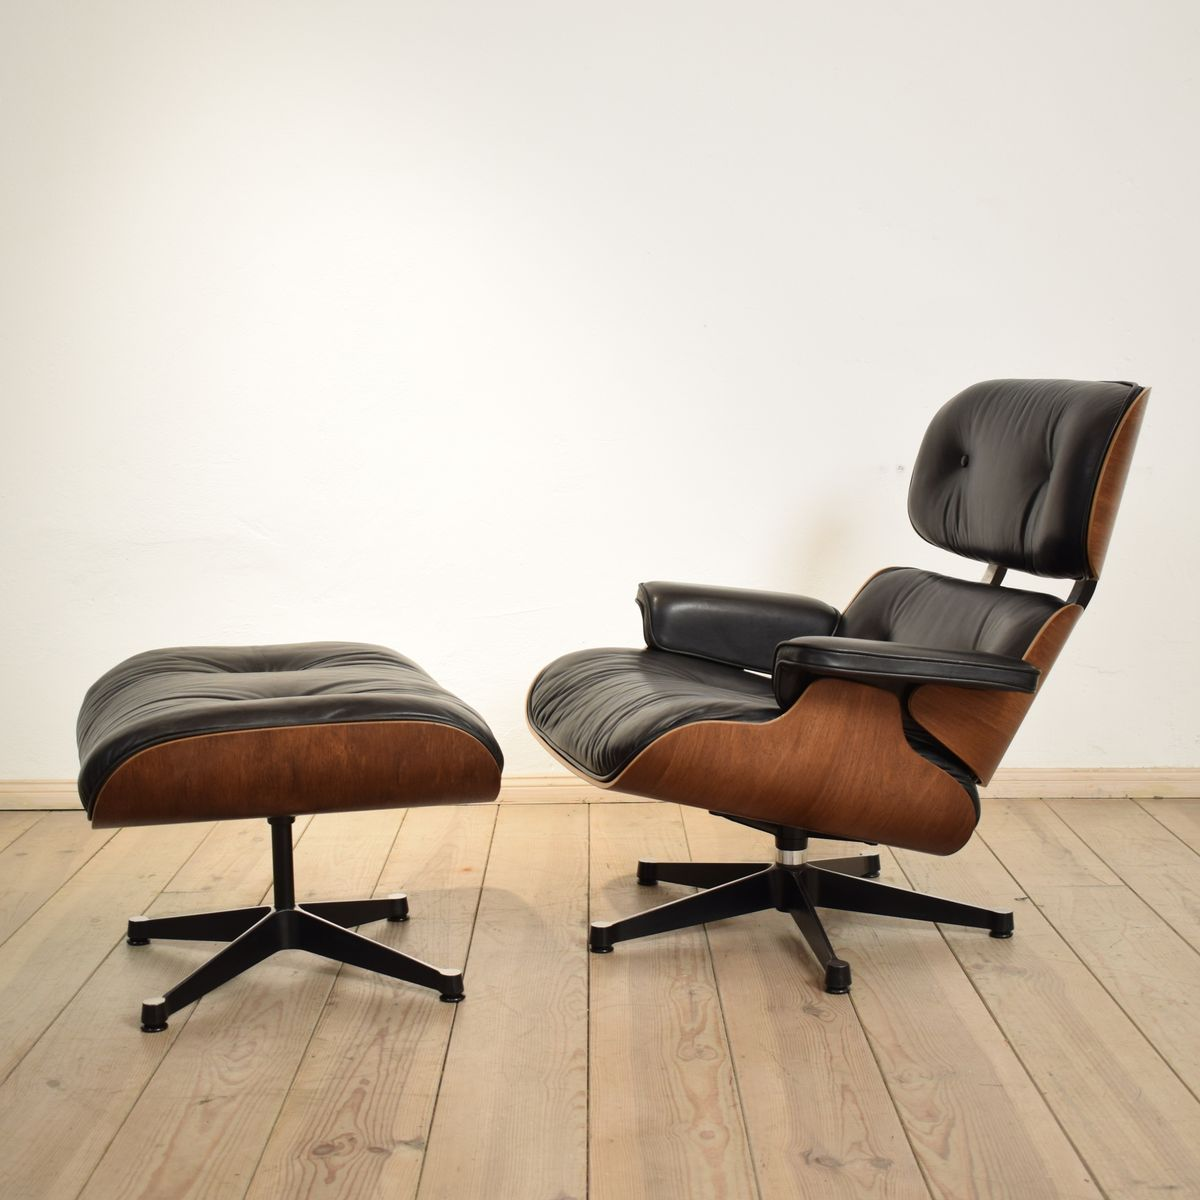 vintage sessel und ottoman von charles eames f r vitra bei pamono kaufen. Black Bedroom Furniture Sets. Home Design Ideas